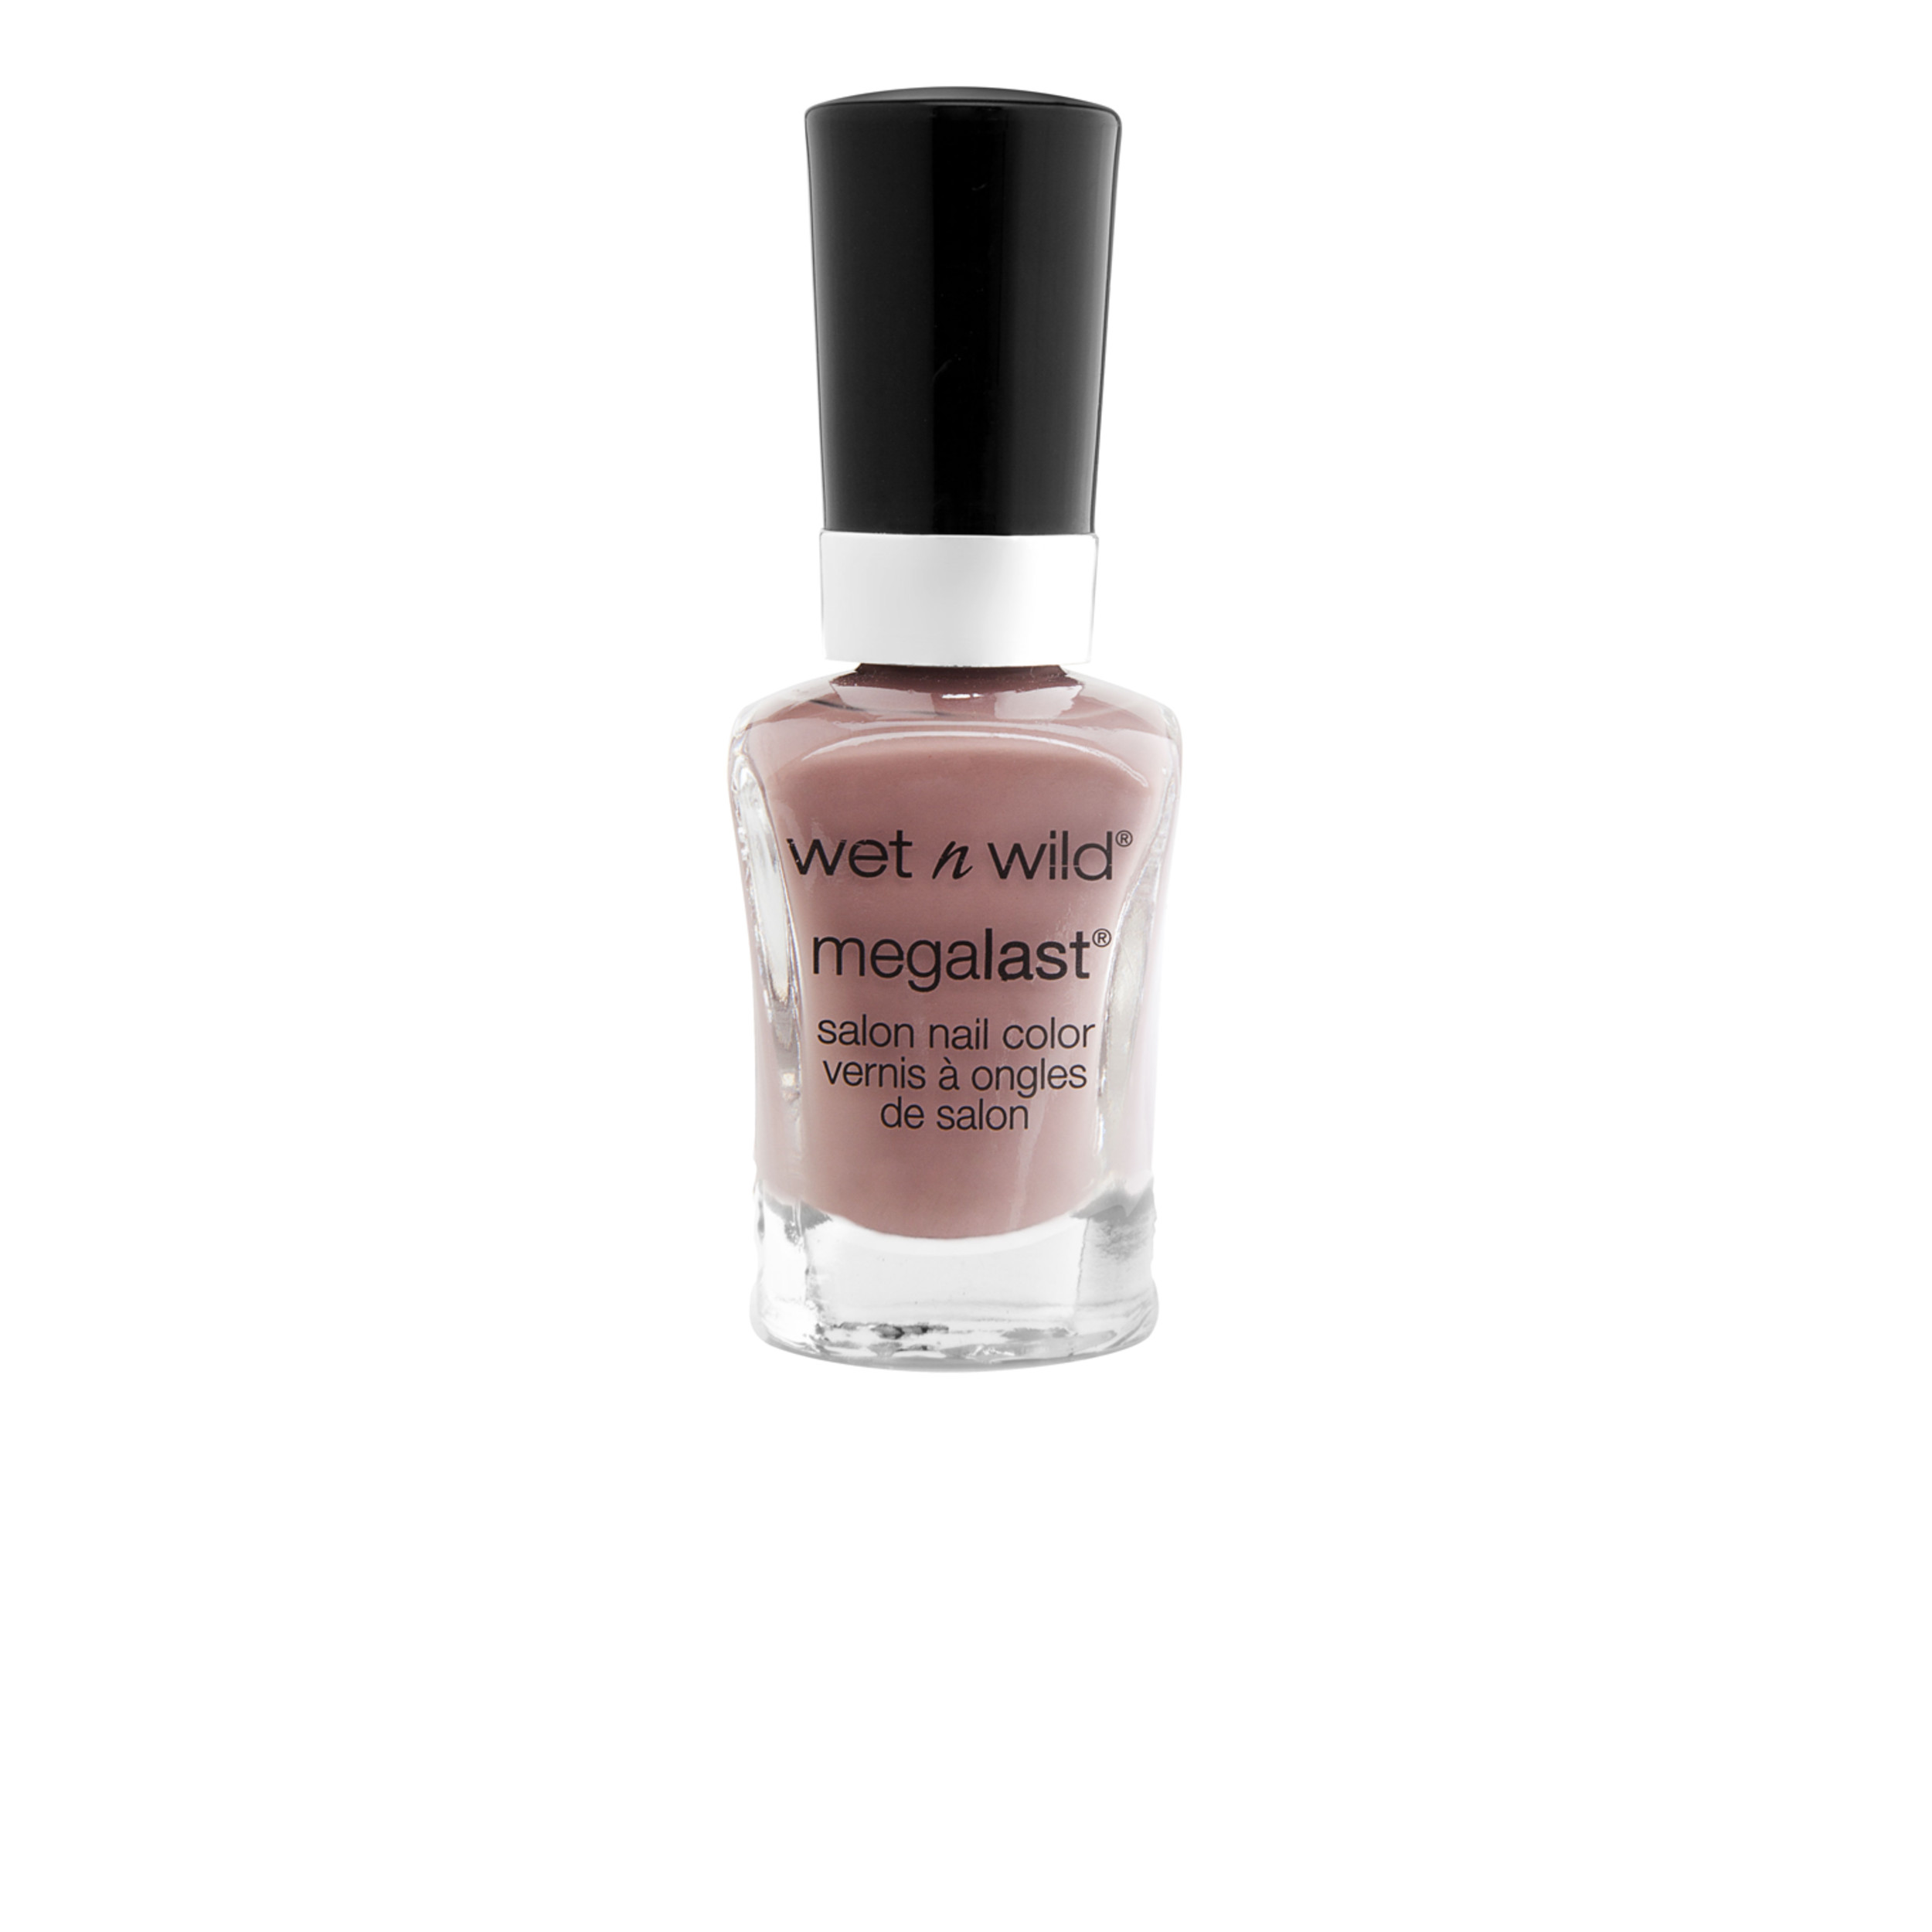 wet n wild MegaLast Salon Nail Color, Private Viewing - Walmart.com